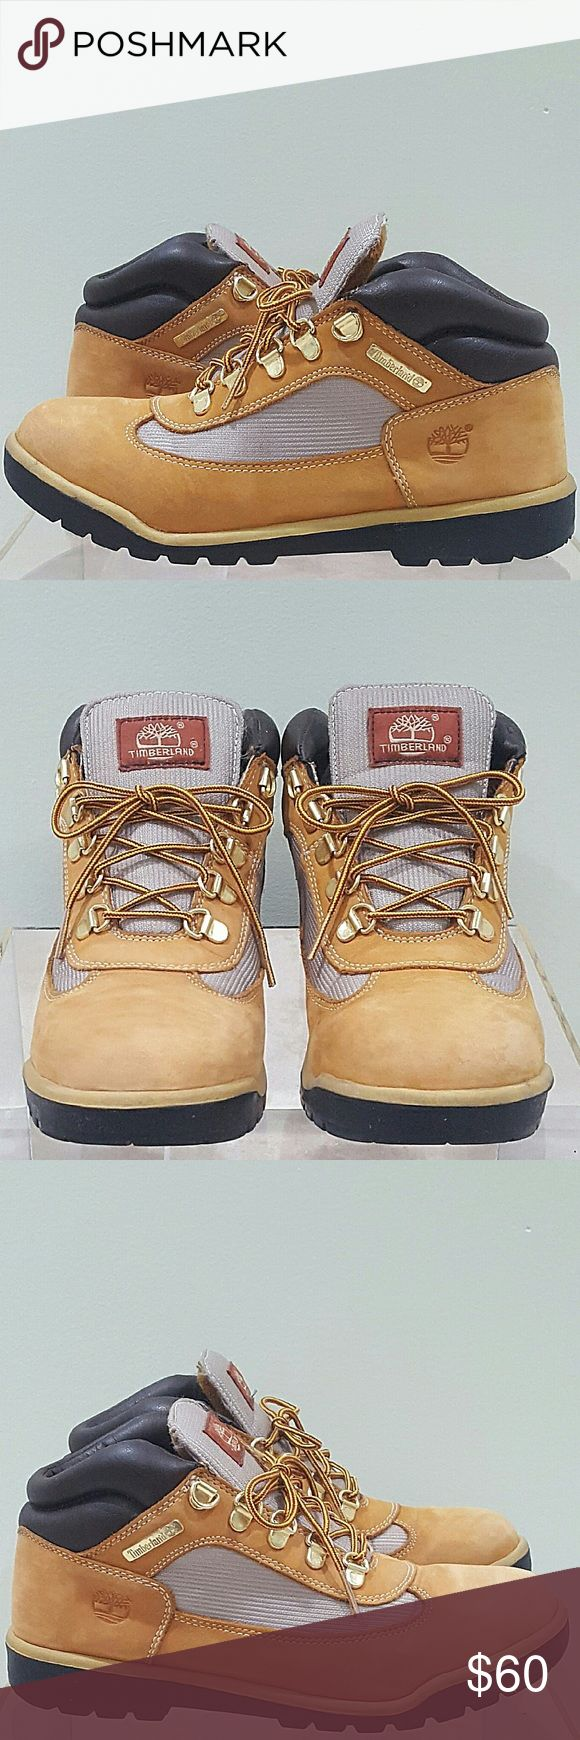 Timberland Field Boots Timberland Field Boots in the Color Wheat. Great Condition! Genuine leather, man-made lining and outsole. Waterproof, so perfect for outdoor activities. Size is boys US 6.5 but fits Women's 7.5-8! Timberland Shoes Lace Up Boots